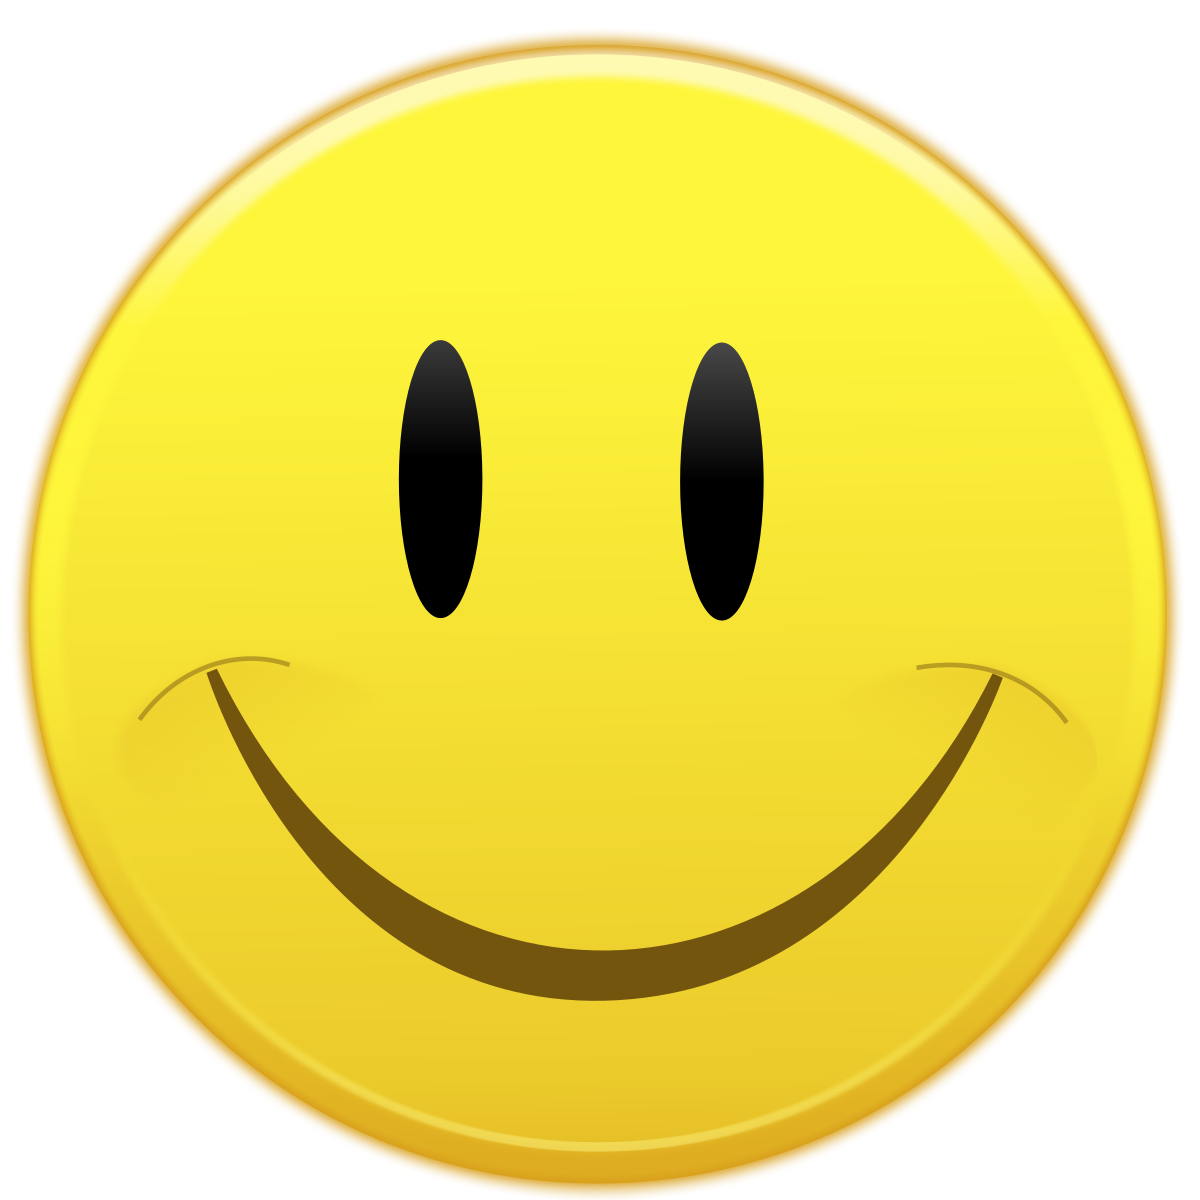 Smiley face clip art thumbs up royalty free library Smiley - Wikipedia royalty free library